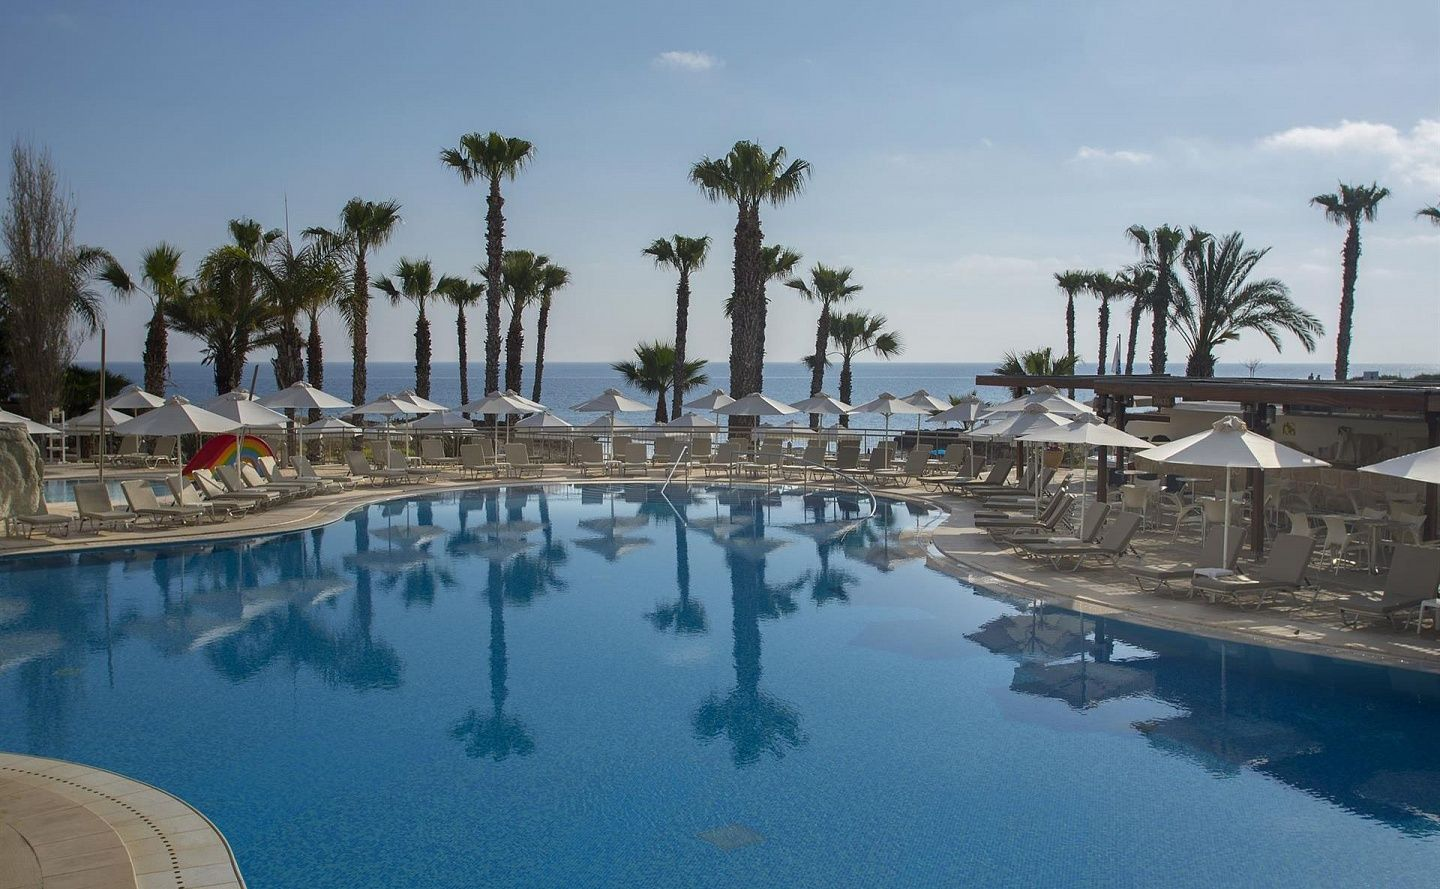 LOUIS ALTHEA BEACH HOTEL 4 * - Изображение 1